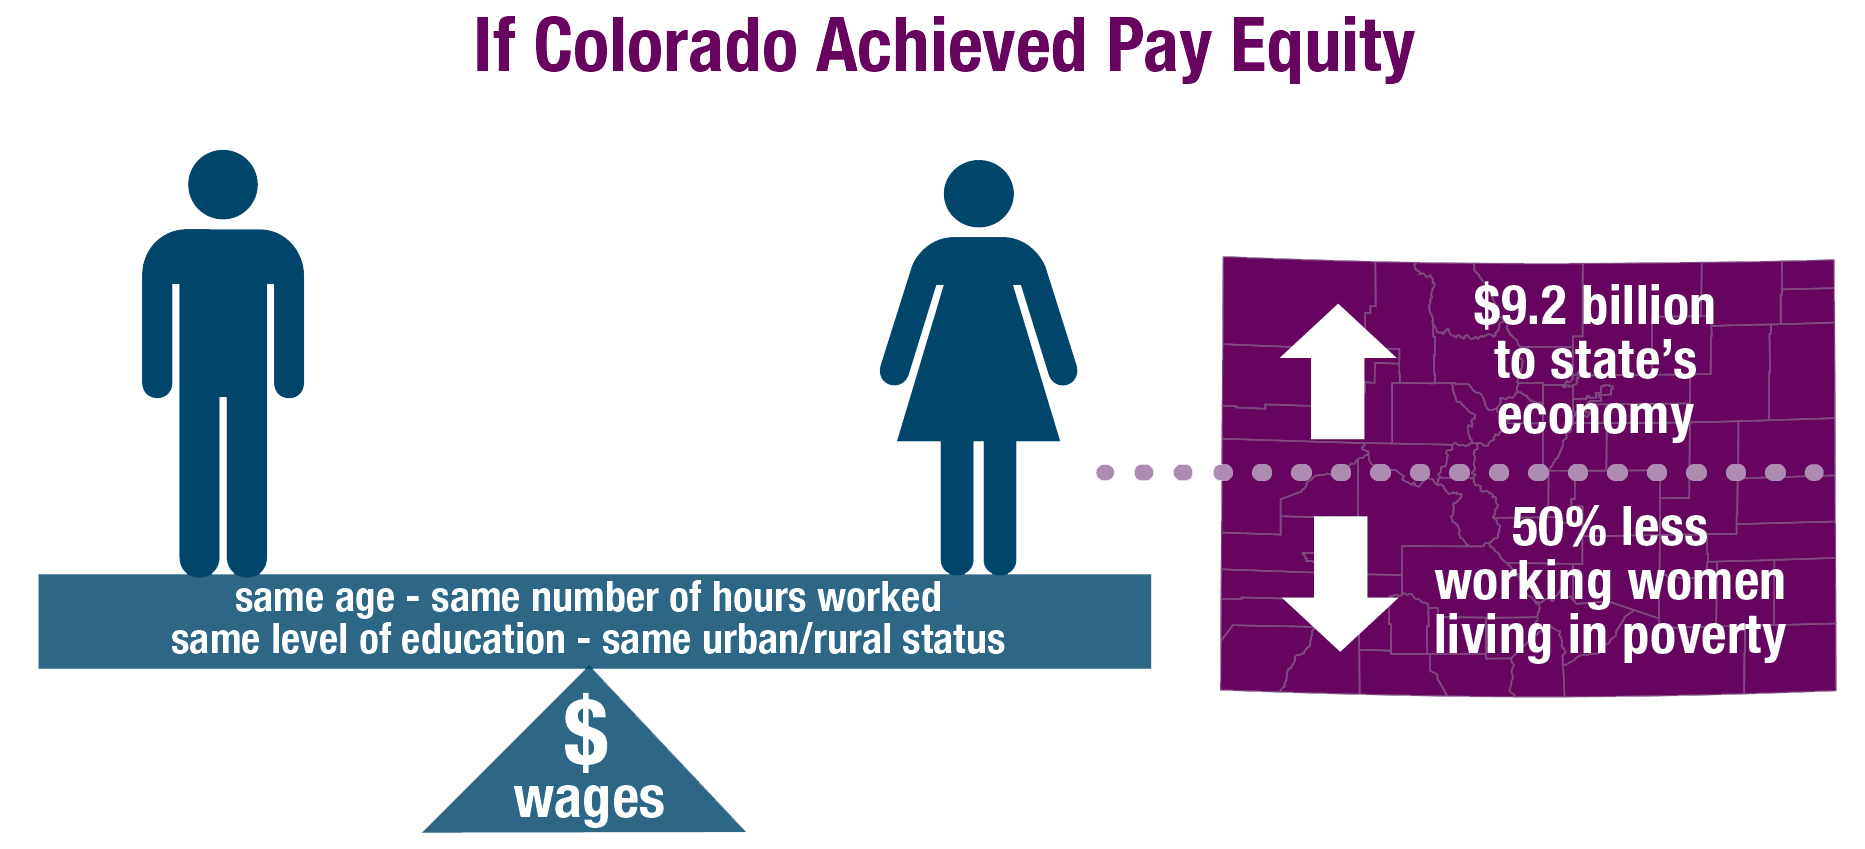 If Colorado Achieved Pay Equity